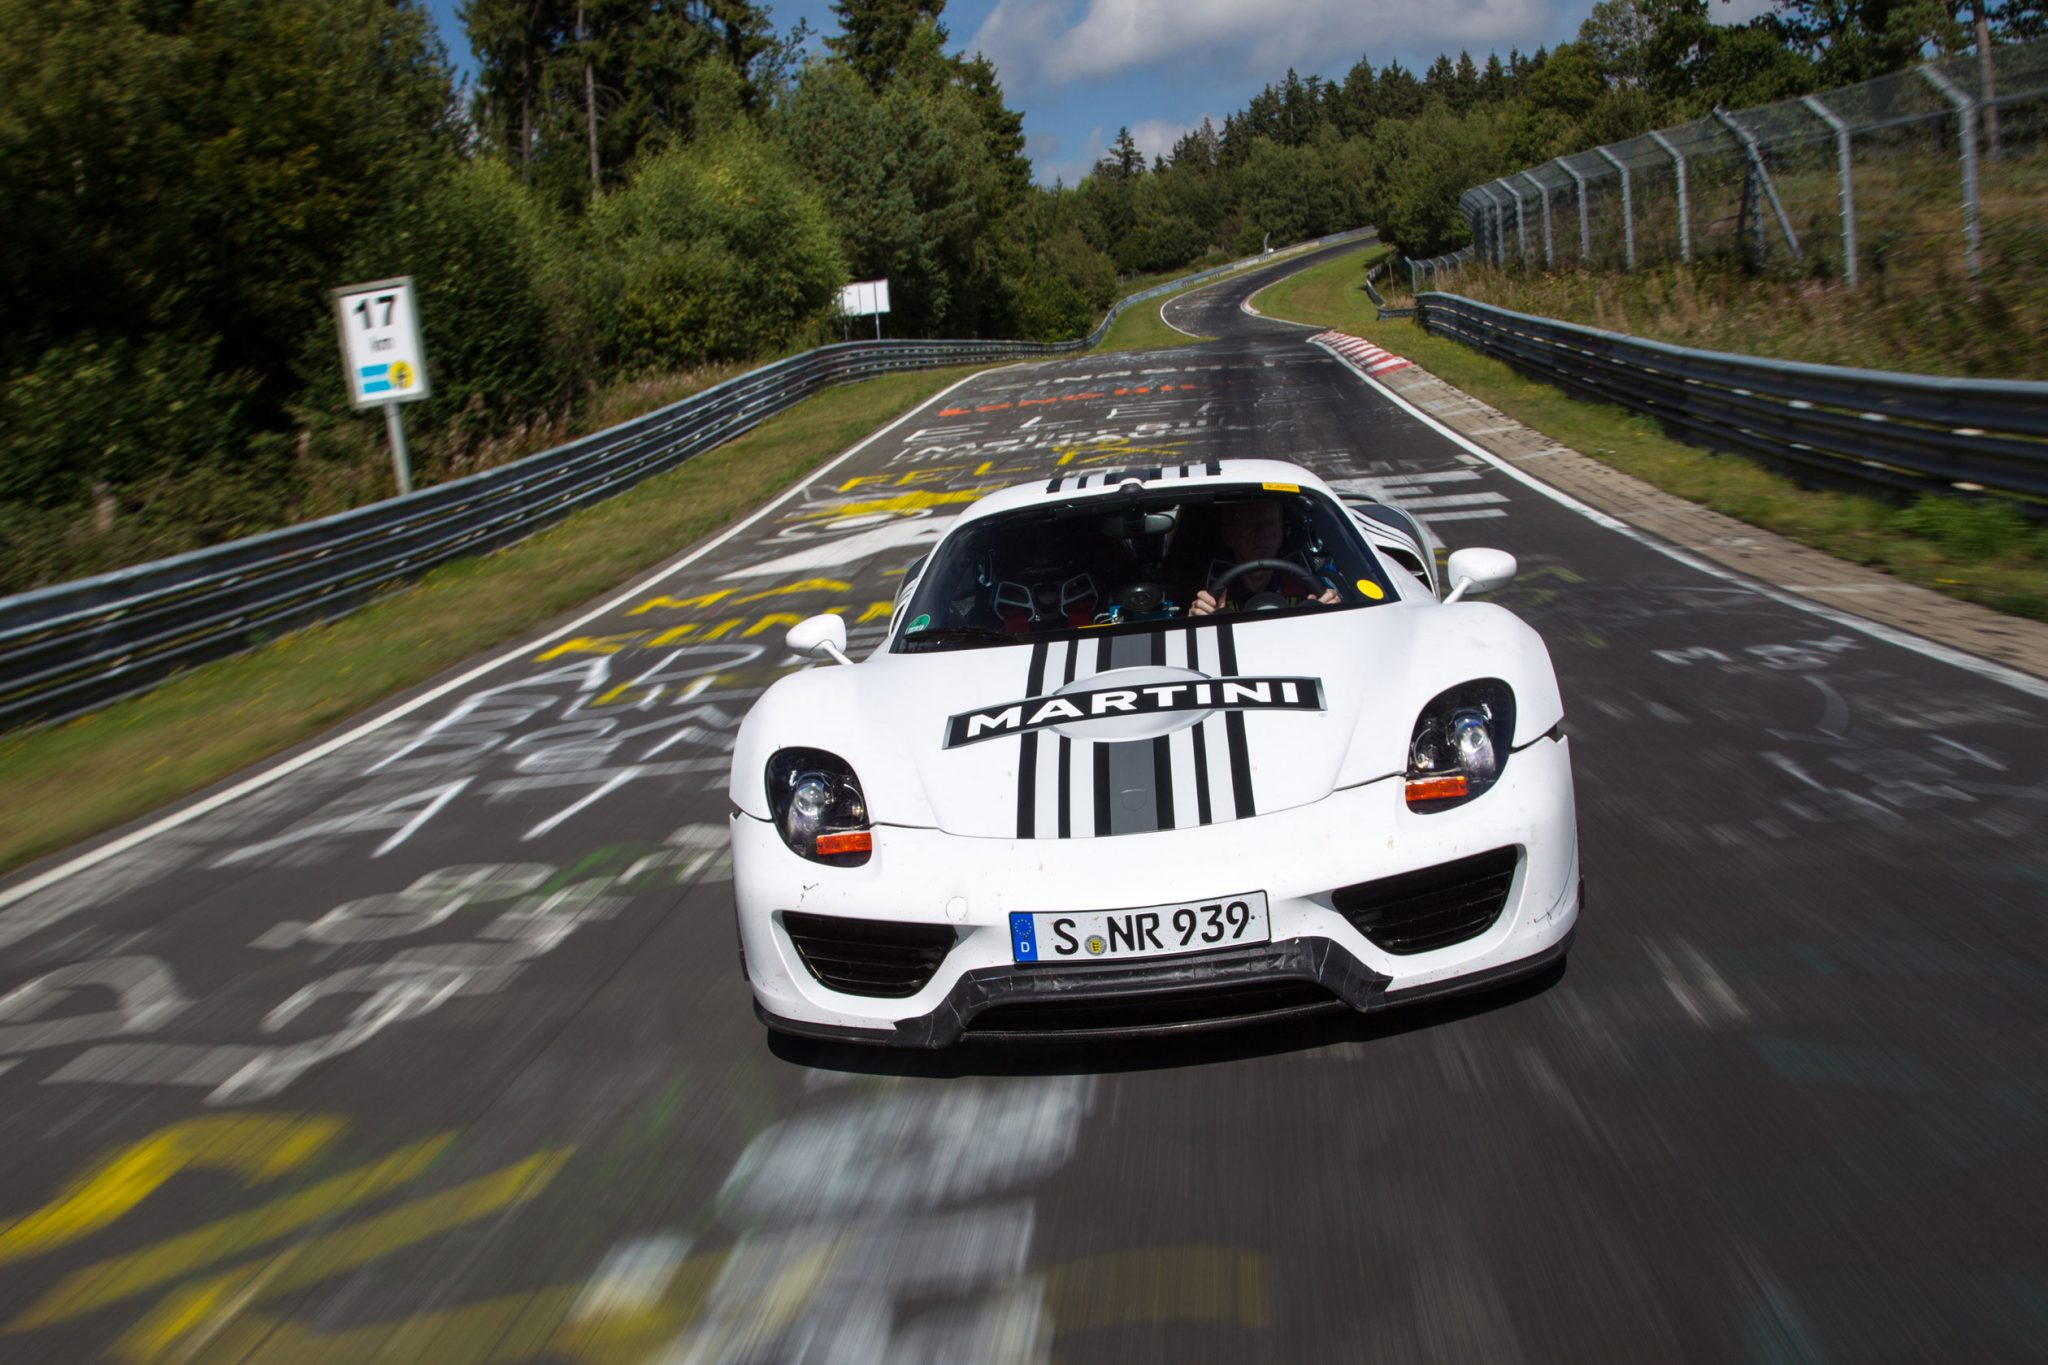 Electric Mini Cooper >> Porsche Cars - News: 918 Spyder laps Nürburgring in 7:14 min